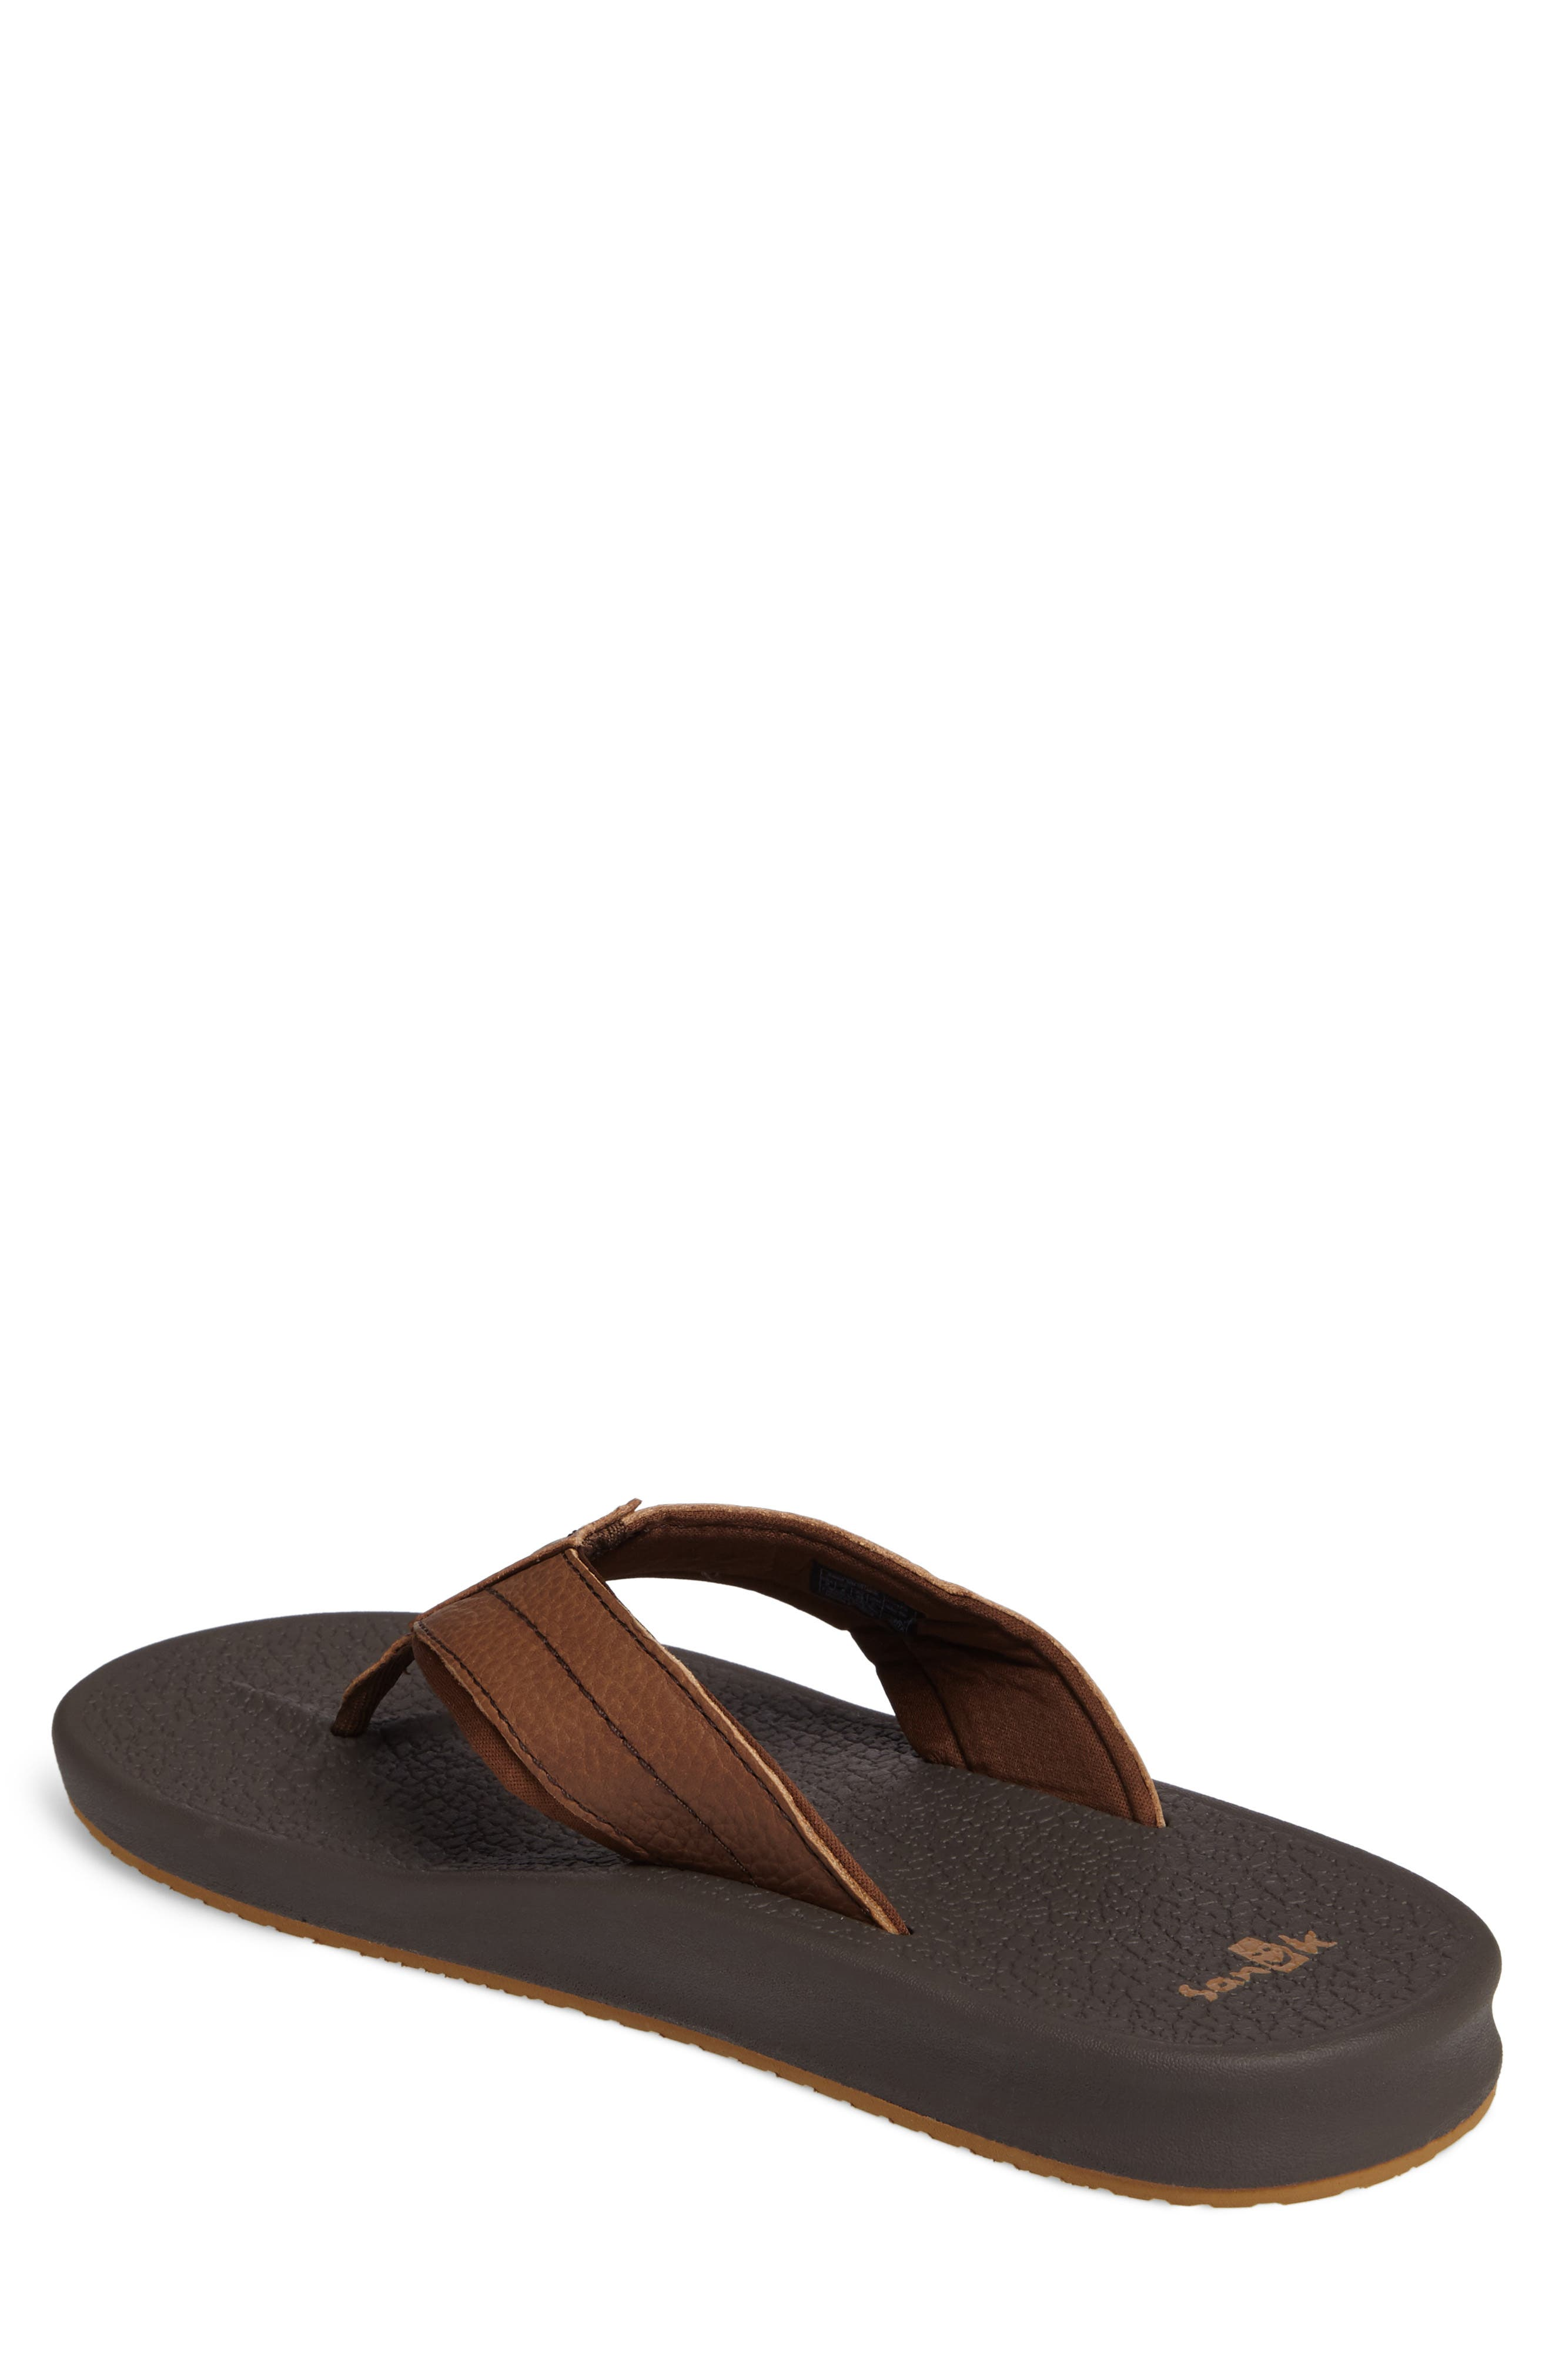 Brumesiter Primo Flip Flop,                             Alternate thumbnail 2, color,                             Brown Leather